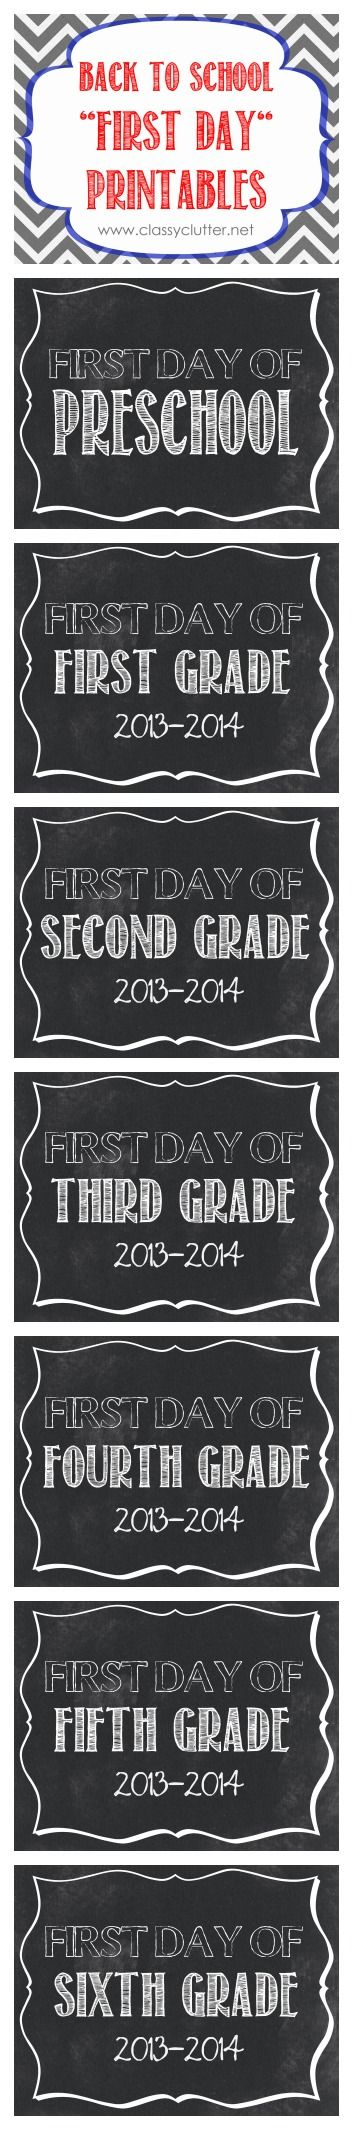 102 best Back to School images on Pinterest Classroom - school self evaluation form